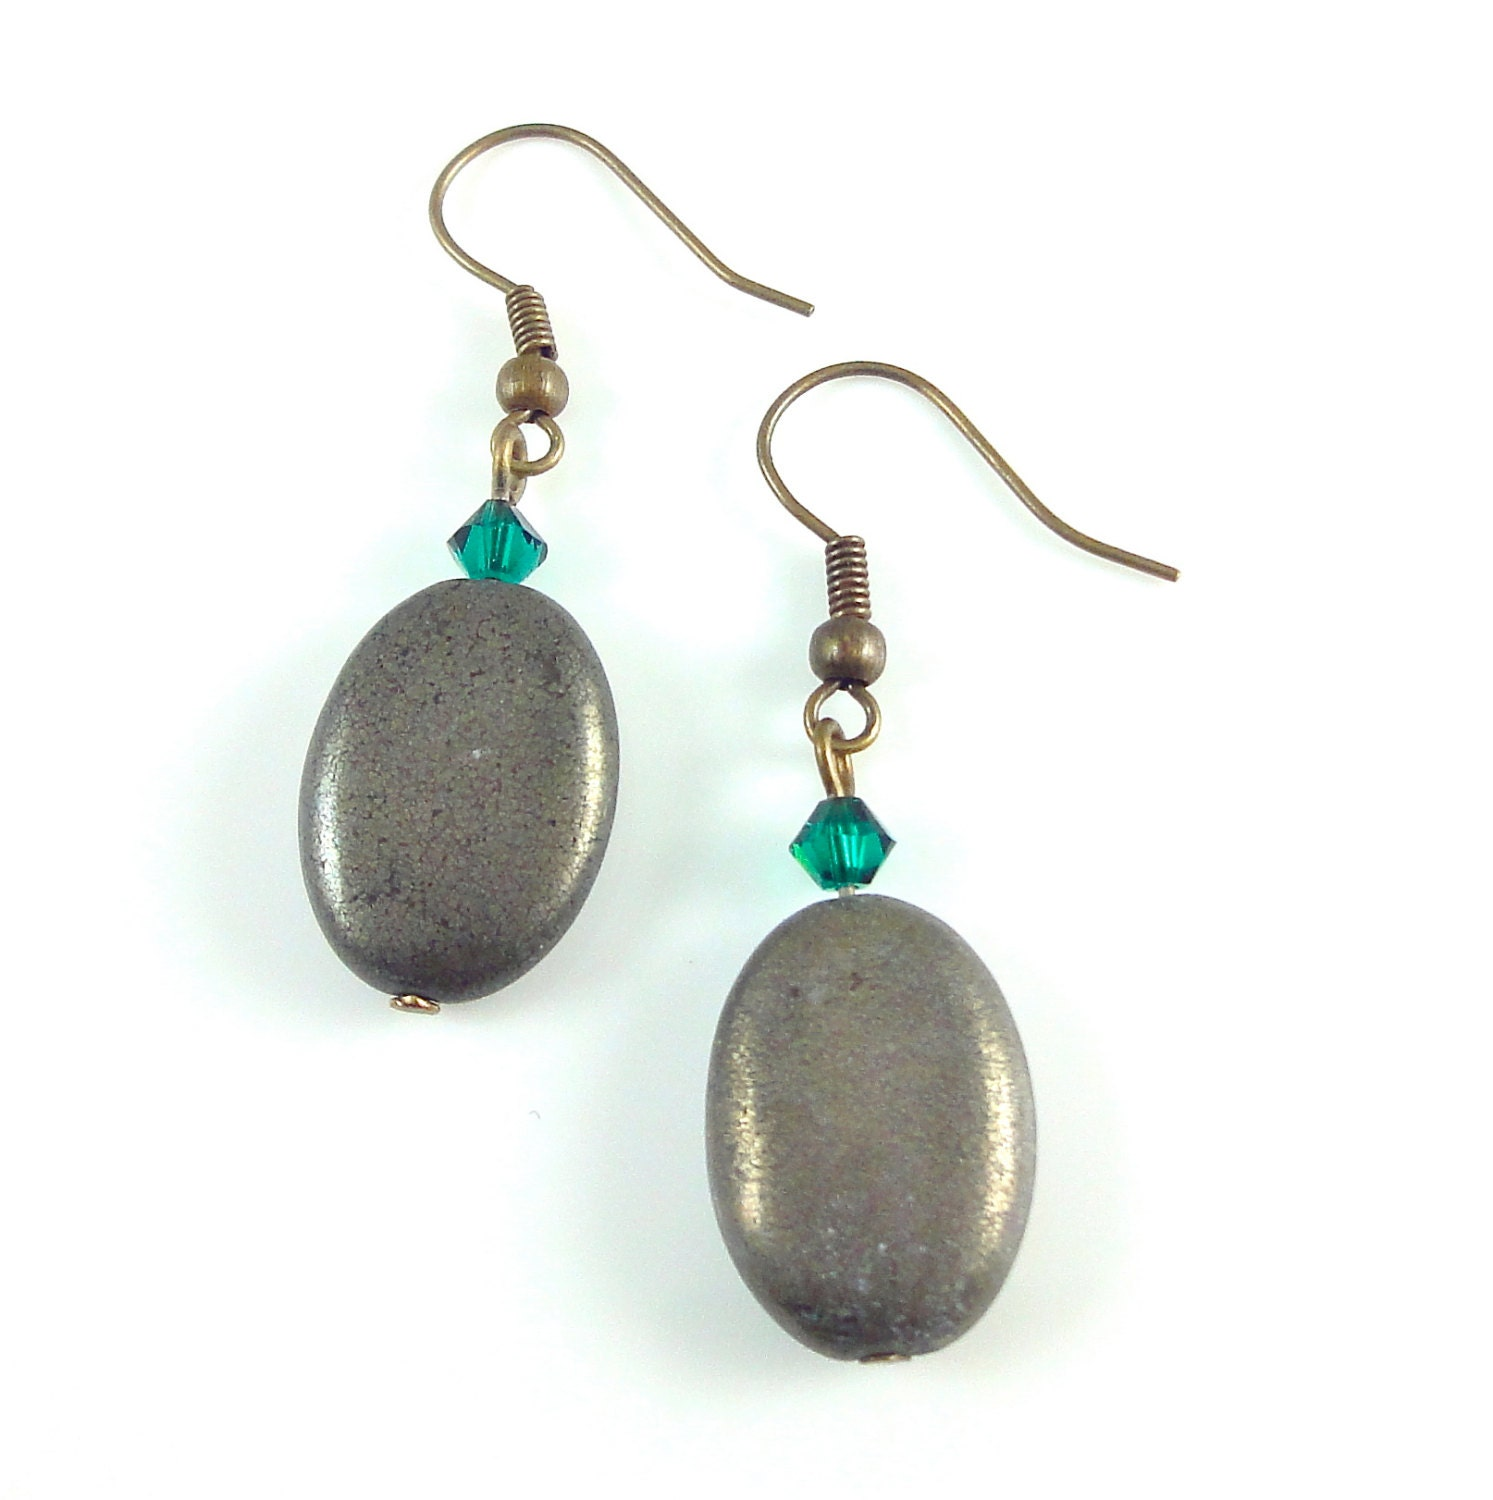 Pyrite Earrings Oval Pyrite Beads with Emerald Green Swarovski Crystals Semi Precious Stone Earrings